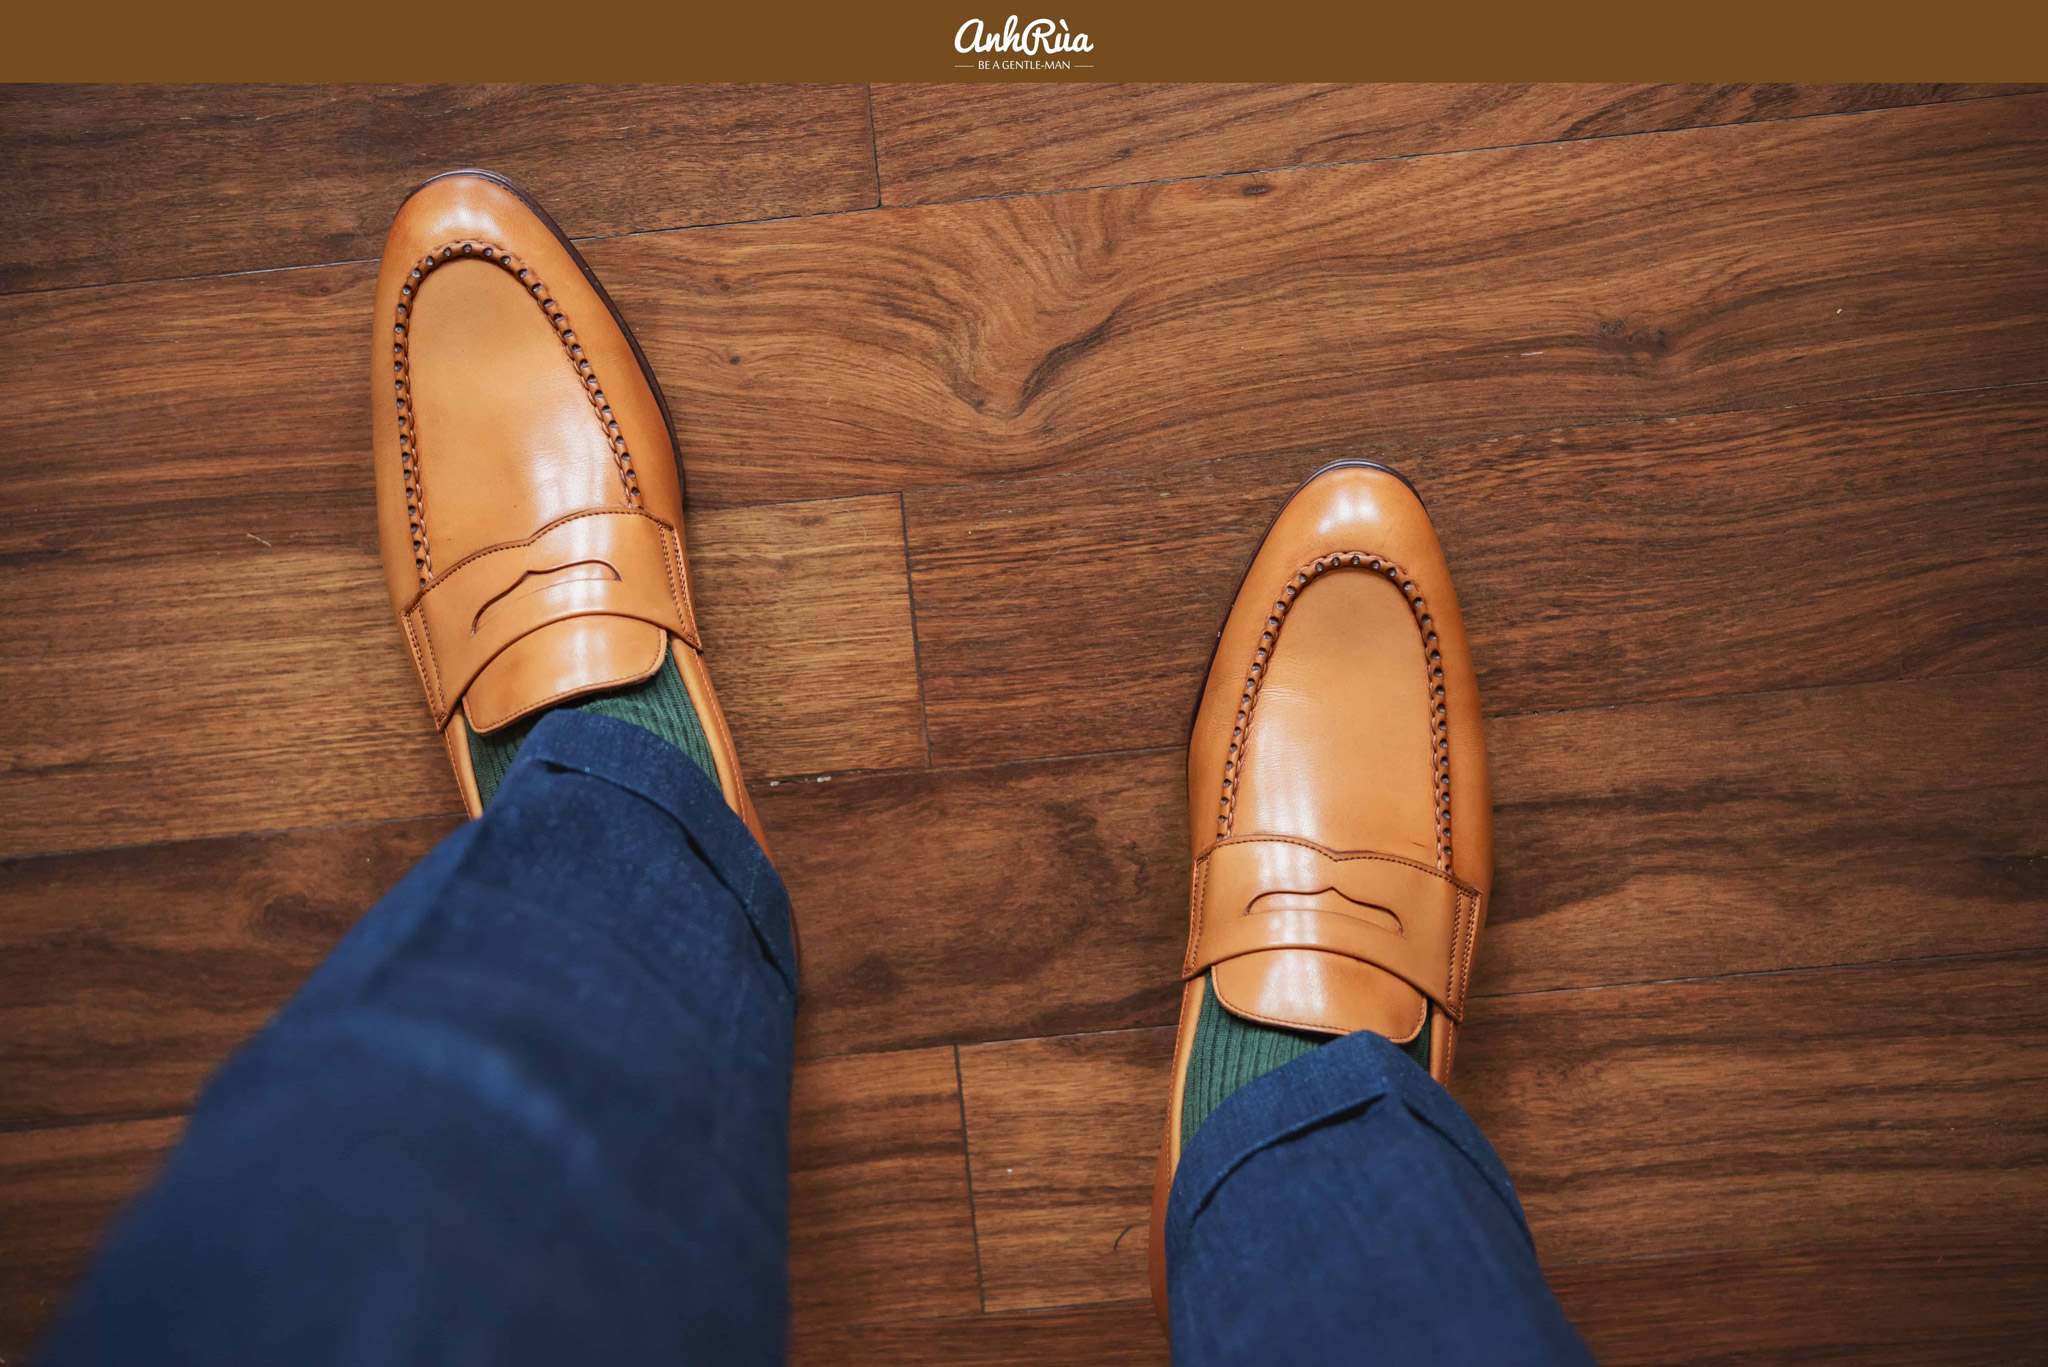 Last Robert tan penny loafers Carmina